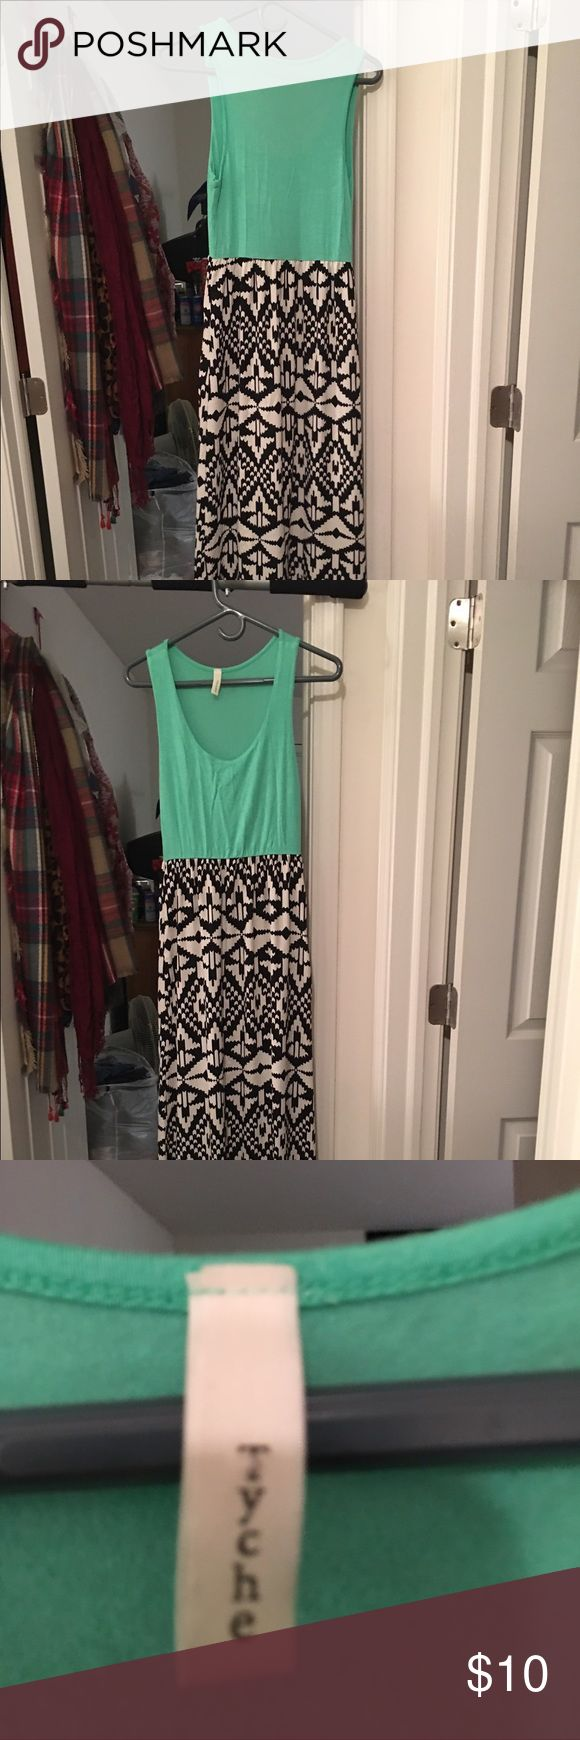 Cute green maxi with Aztec print Really cute Aztec print skirt green maxi size medium would be great for wedding or backyard BBQ Dresses Maxi